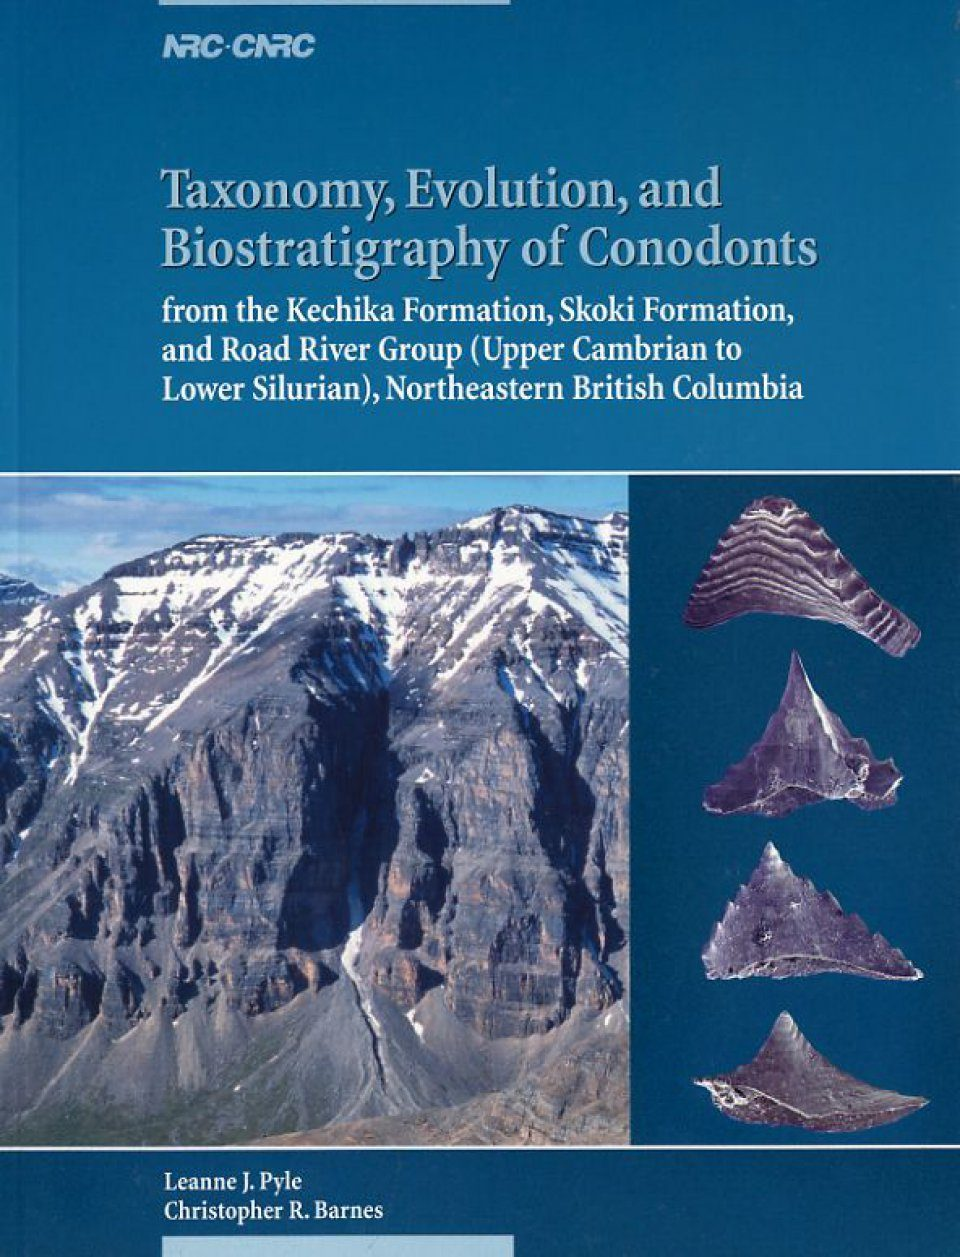 Taxonomy Evolution And Biostratigraphy Of Conodonts Leanne J Pyle And Christopher R Barnes